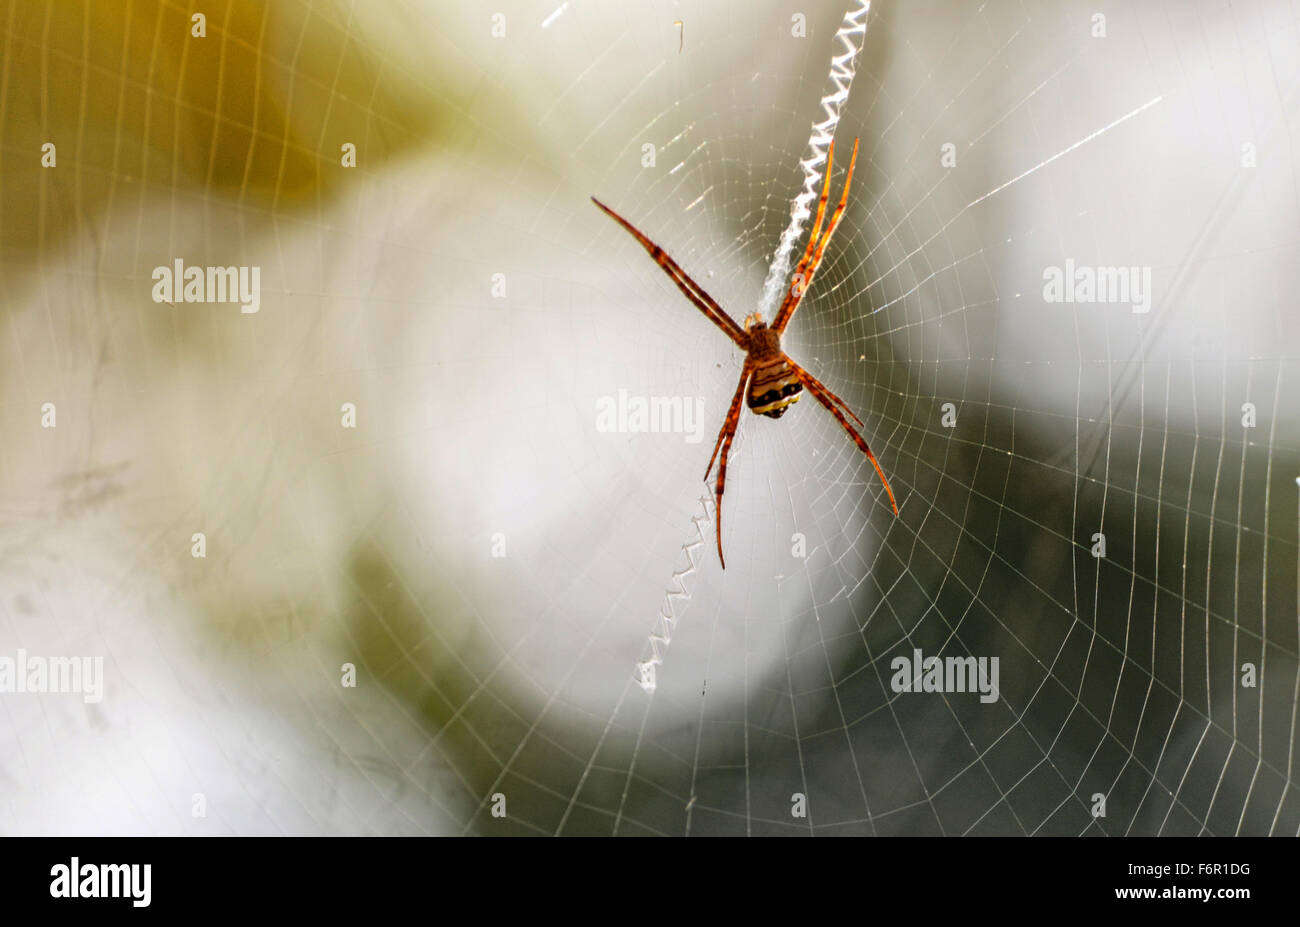 Sunlight falling on a well knit spider web - Stock Image